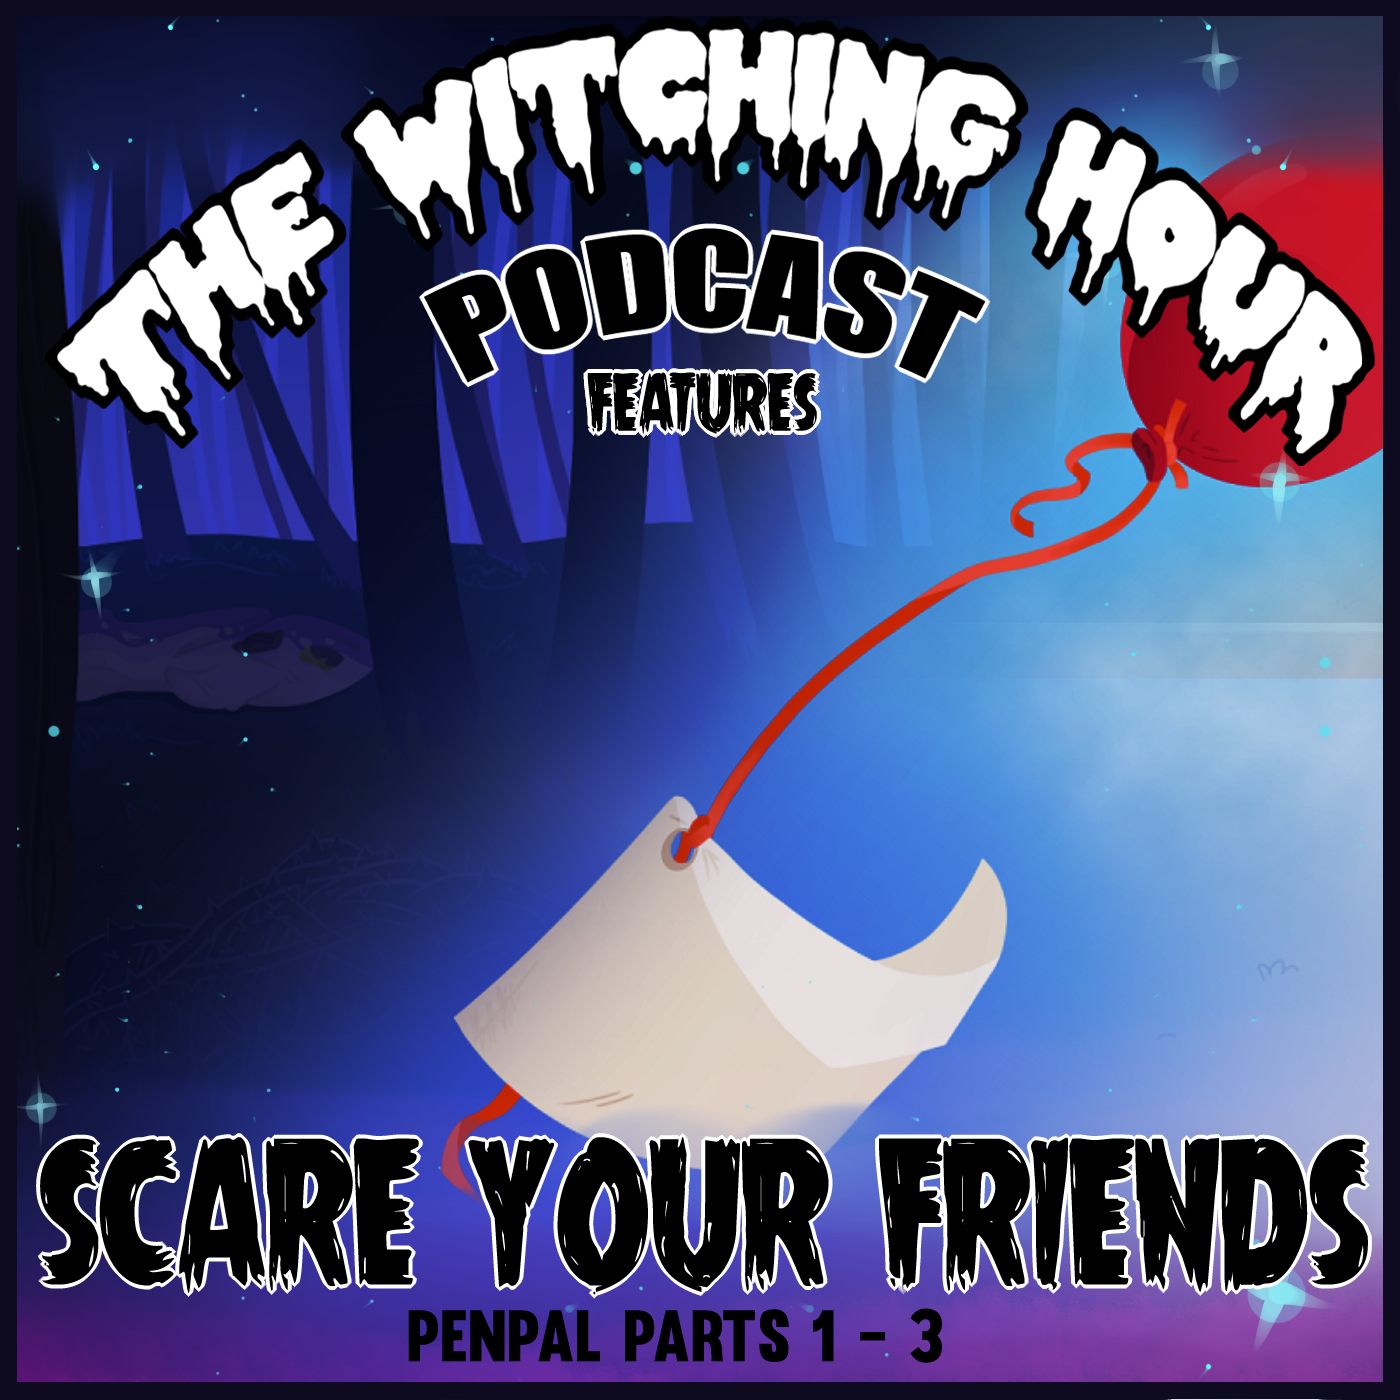 witching_hour_podcast_scare_your_friends_skill_flea_circus